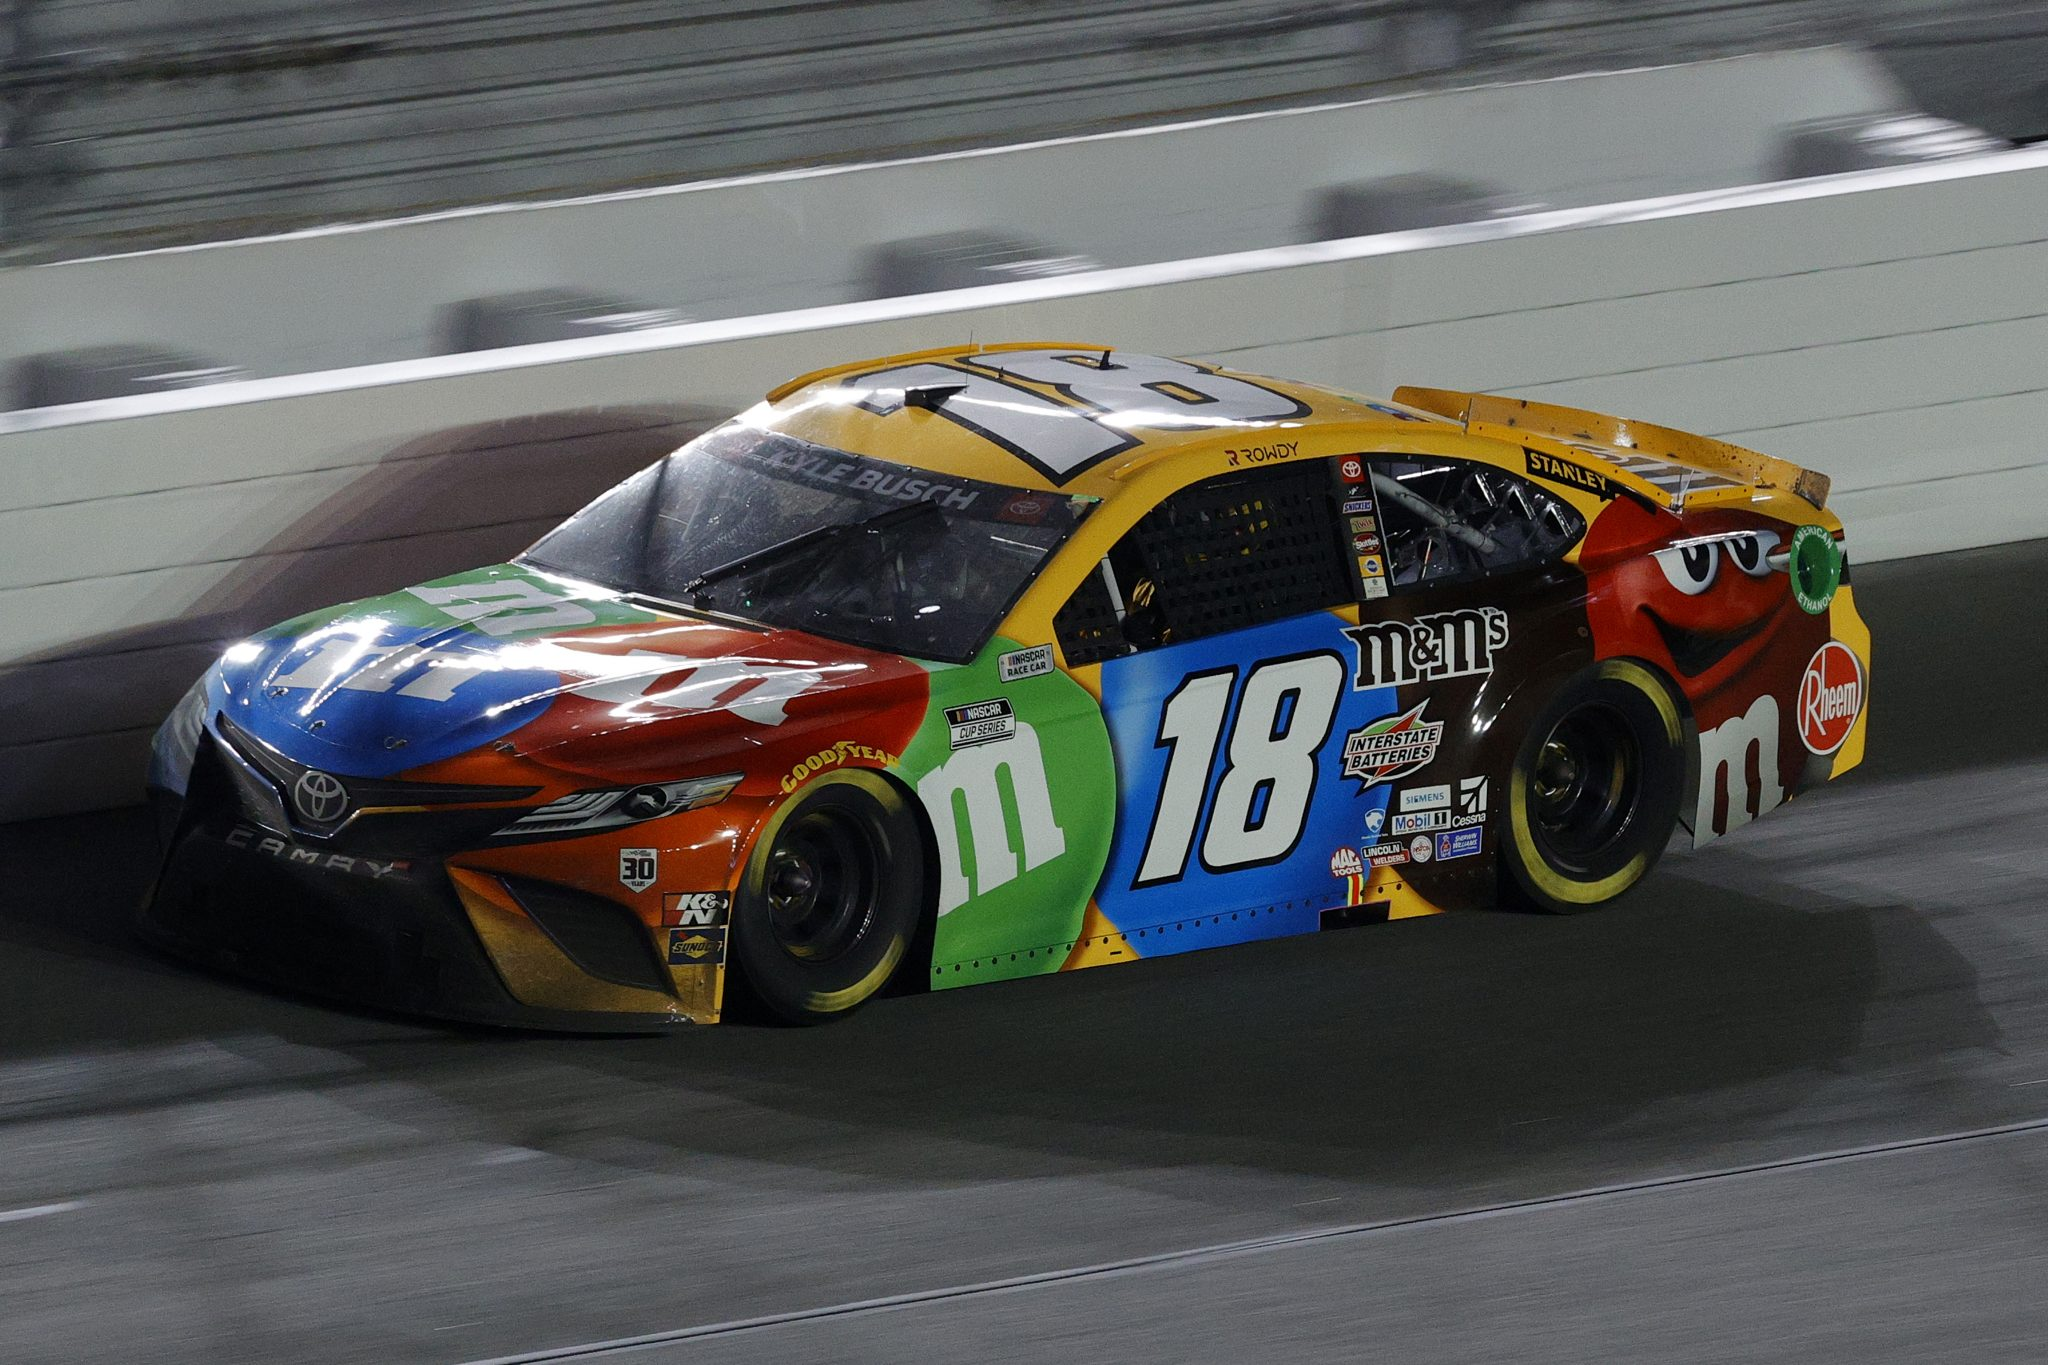 DAYTONA BEACH, FLORIDA - FEBRUARY 09: Kyle Busch, driver of the #18 M&M's Toyota, drives during the NASCAR Cup Series Busch Clash at Daytona at Daytona International Speedway on February 09, 2021 in Daytona Beach, Florida. (Photo by Chris Graythen/Getty Images) | Getty Images